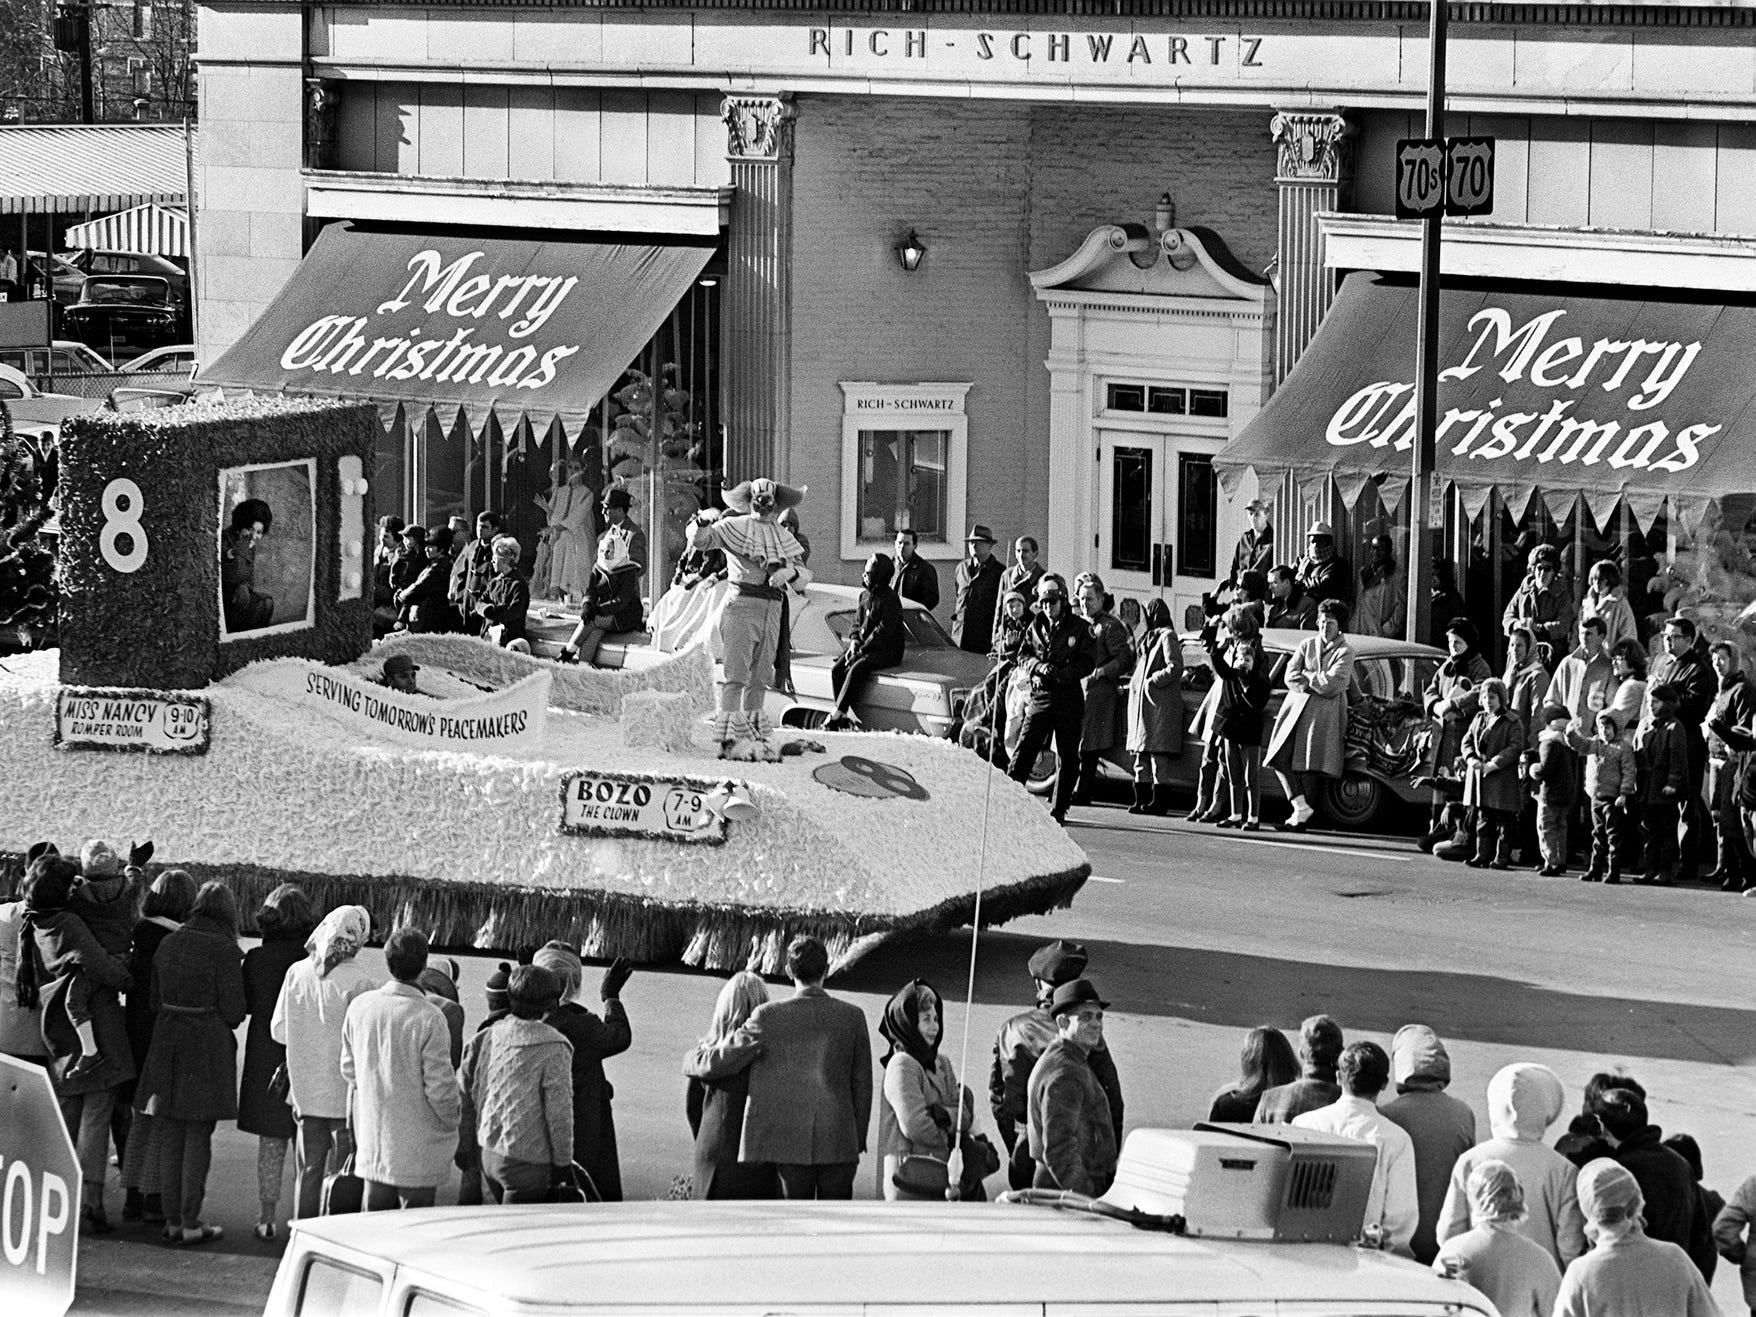 Bozo the Clown, center, and Miss Nancy, left, on the Channel 8 float, wave to the kids lining the street in front of the Rich-Schwartz store during the 16th annual Nashville Christmas Parade on Dec. 8, 1968.